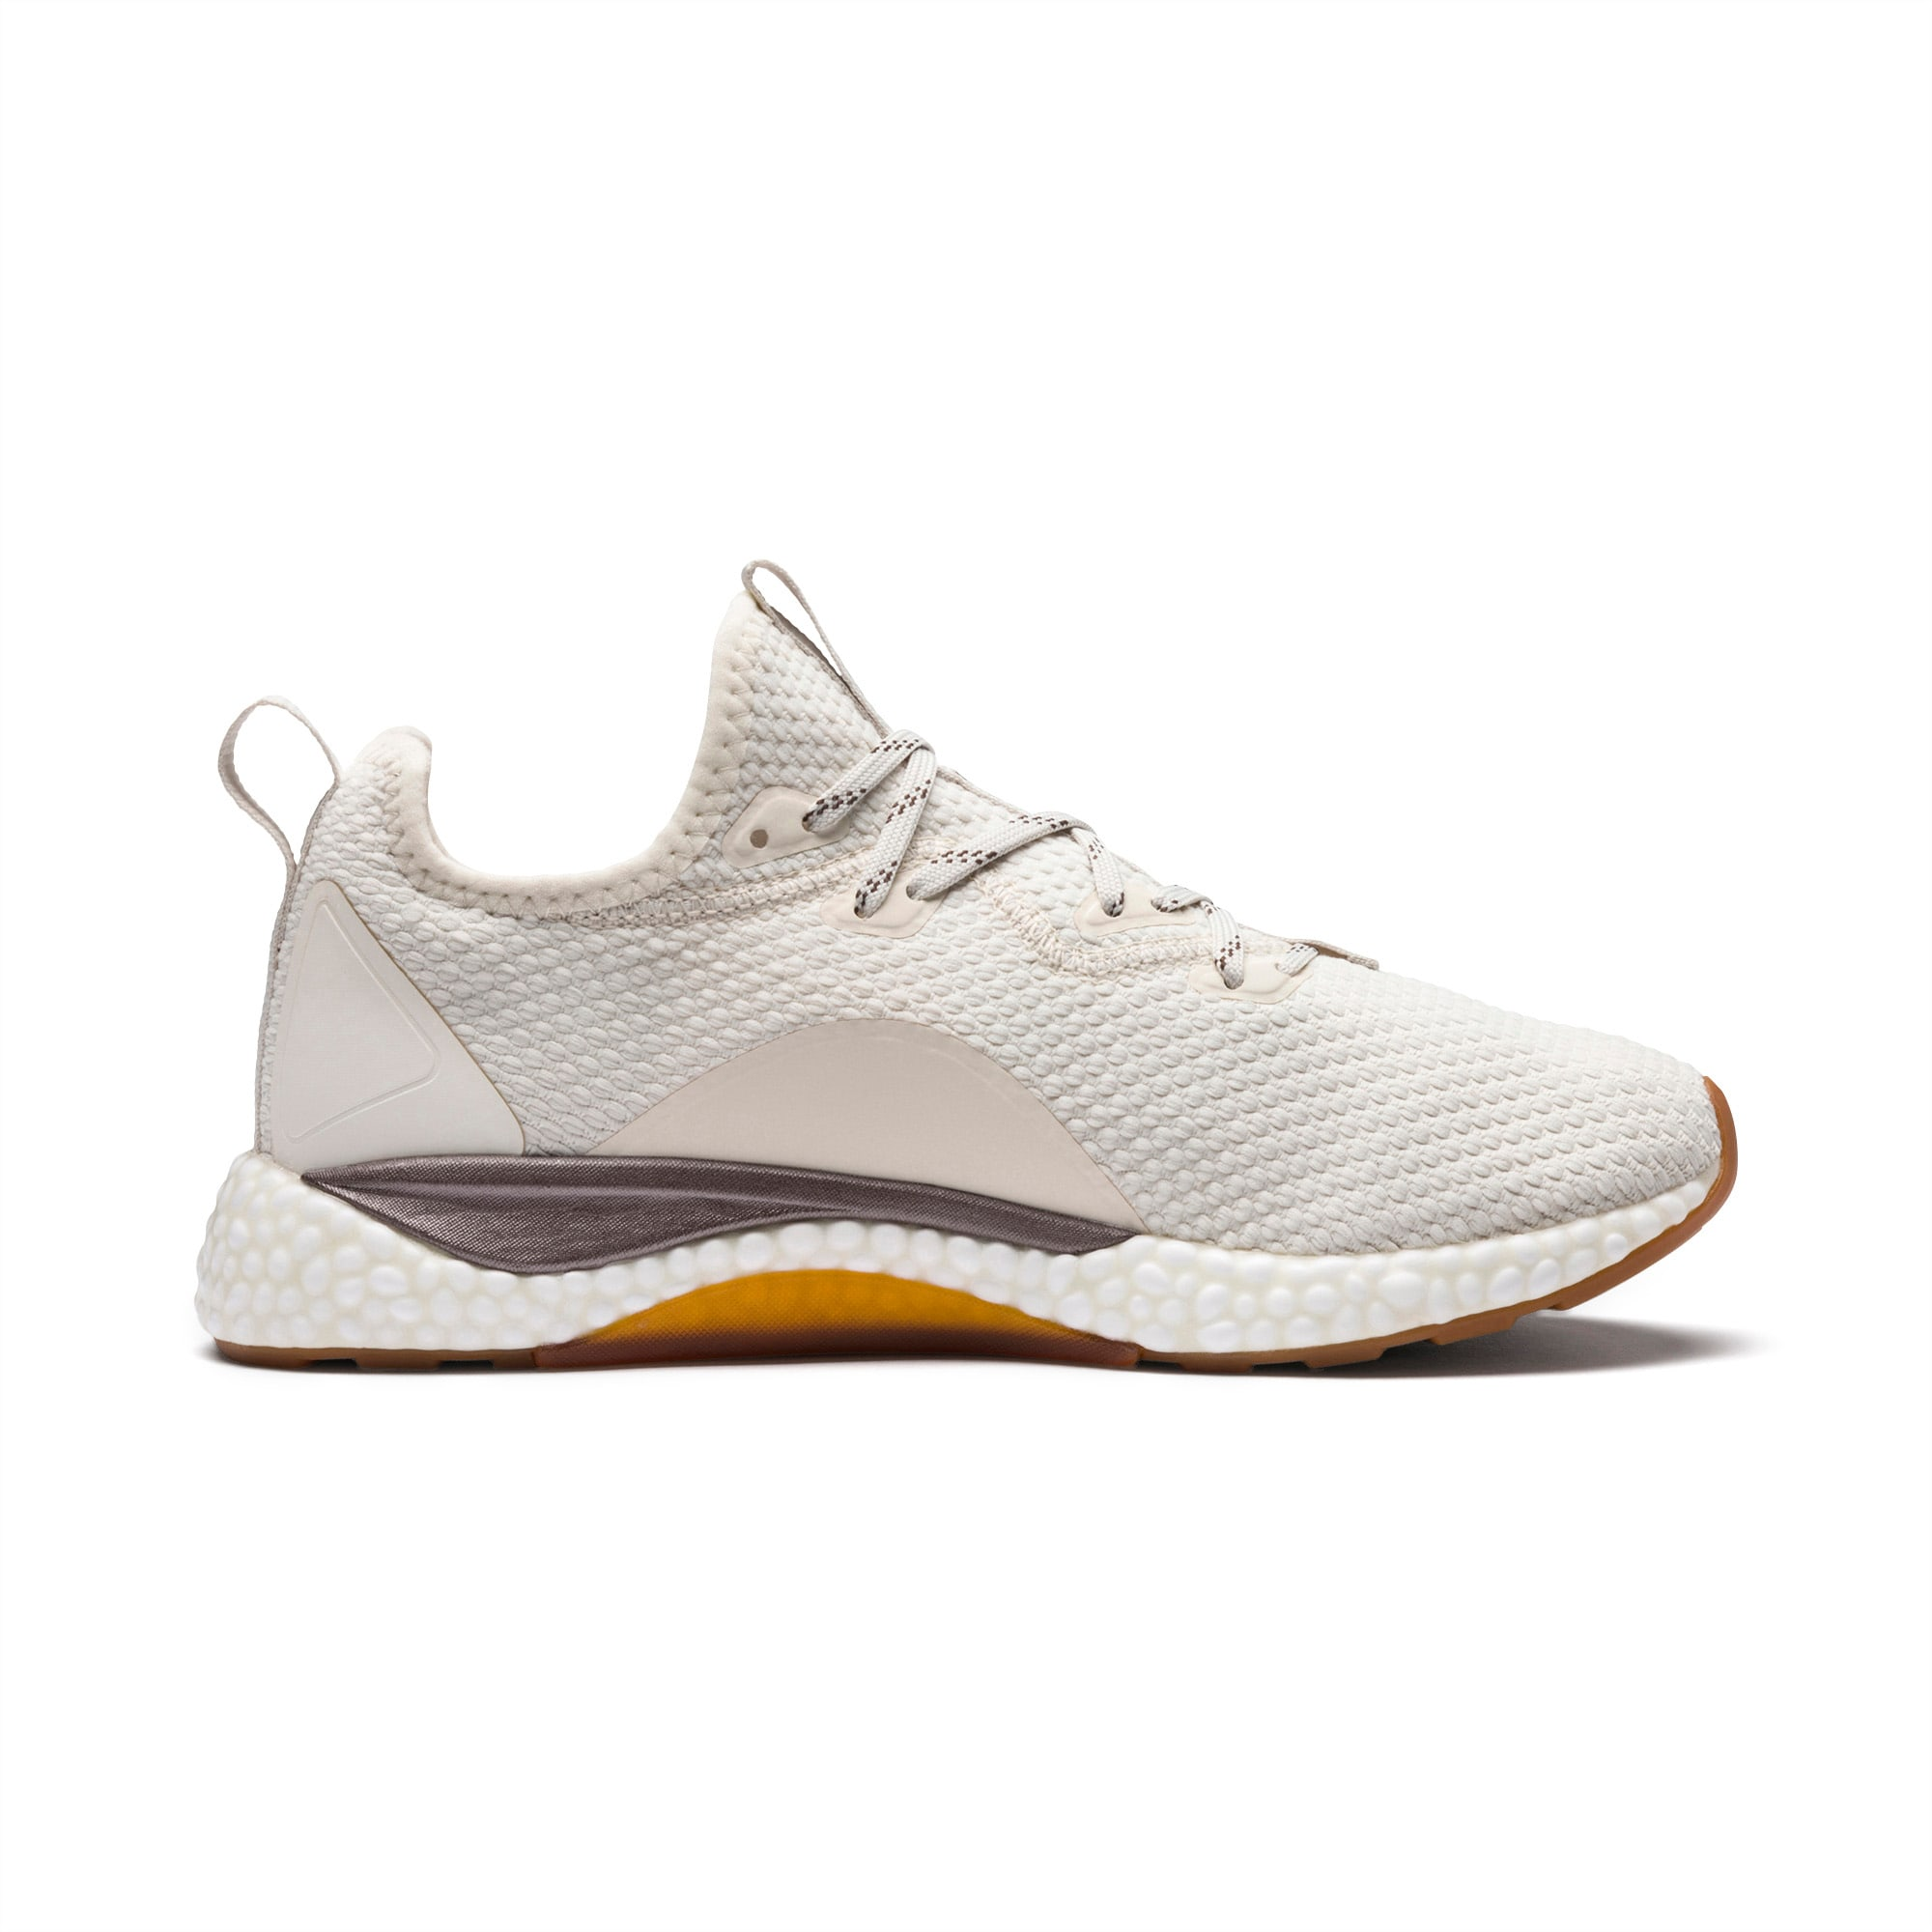 HYBRID Runner Luxe Women's Running Shoes